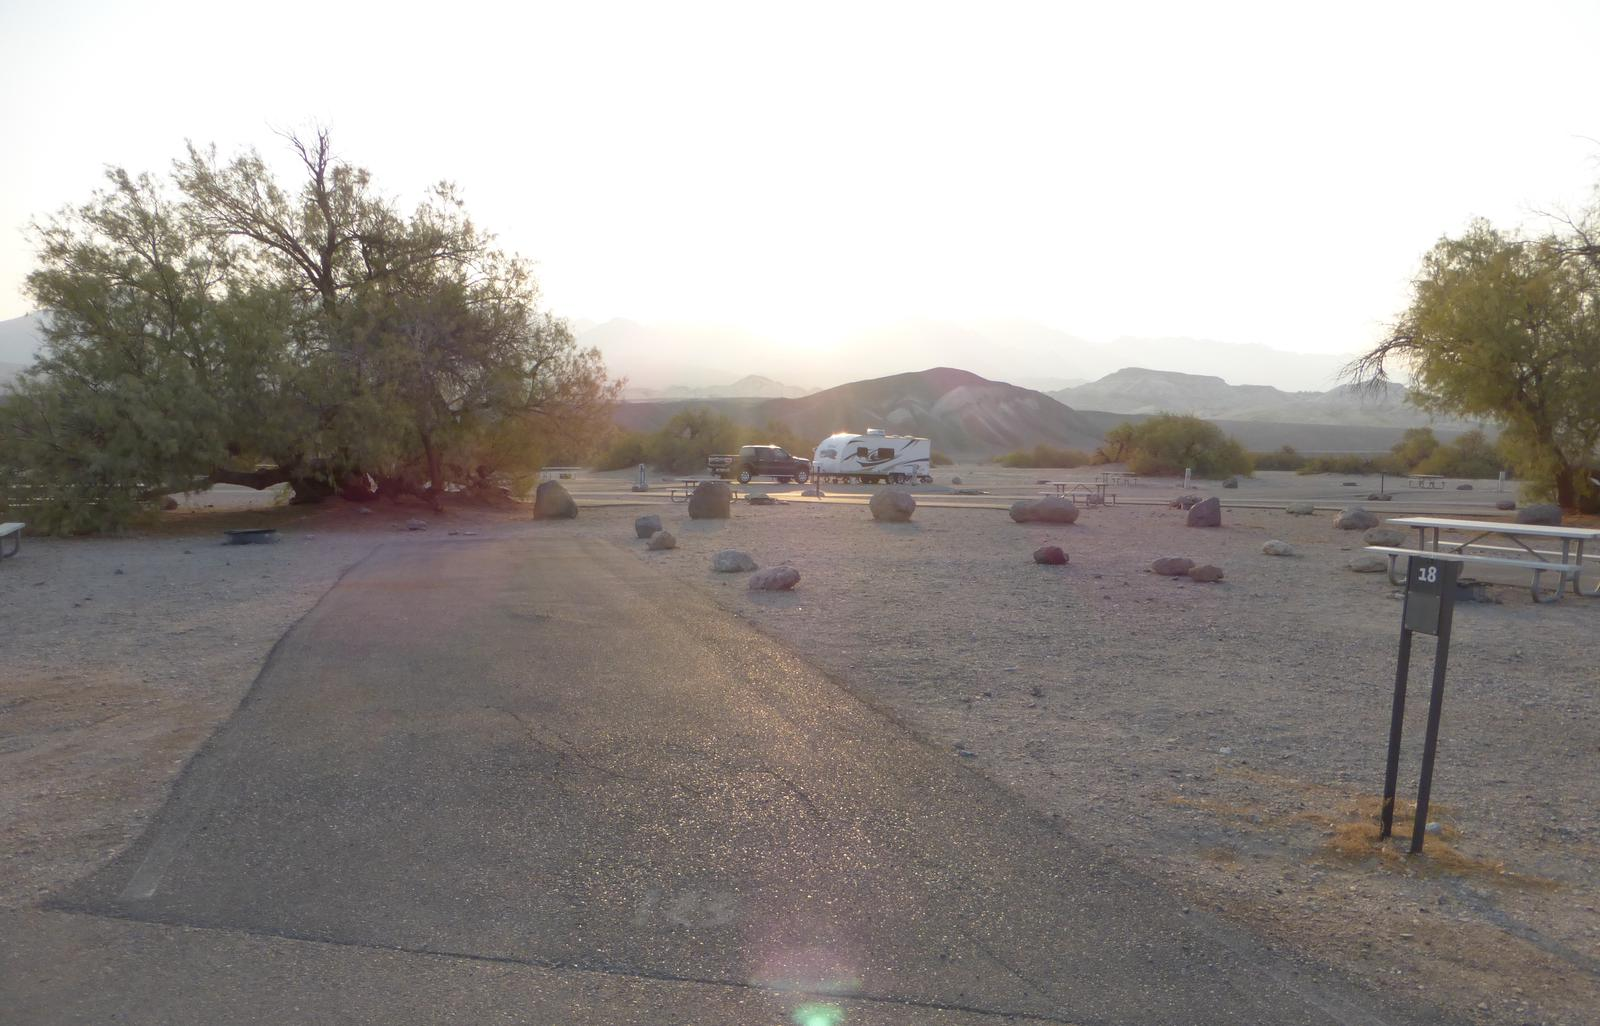 Furnace Creek Campground standard nonelectric site #18 with picnic table and fire ring.